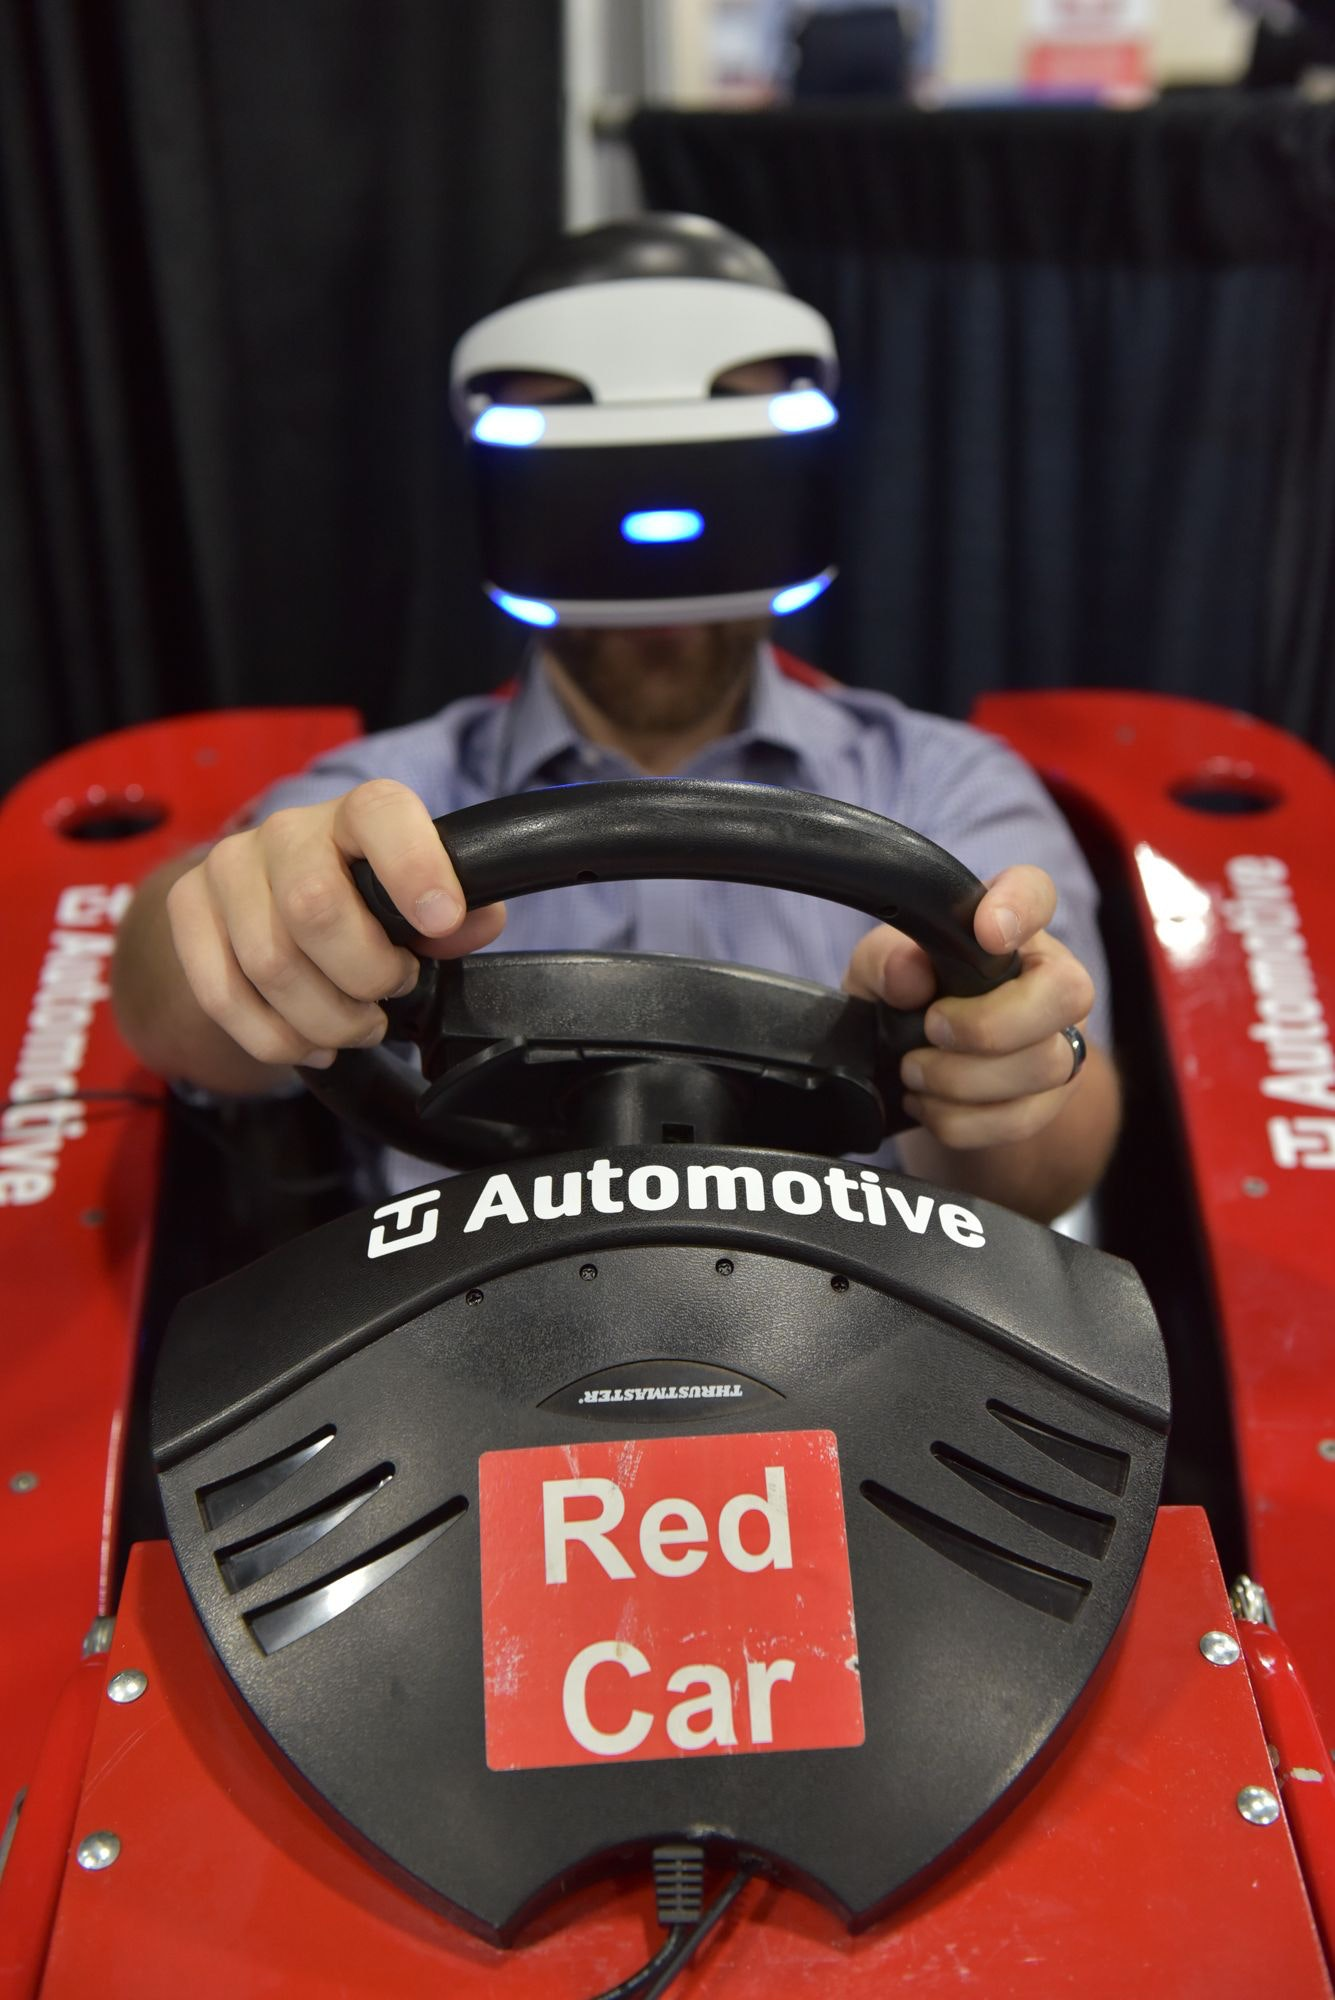 Future tech car with virtual reality headset on display in the expo